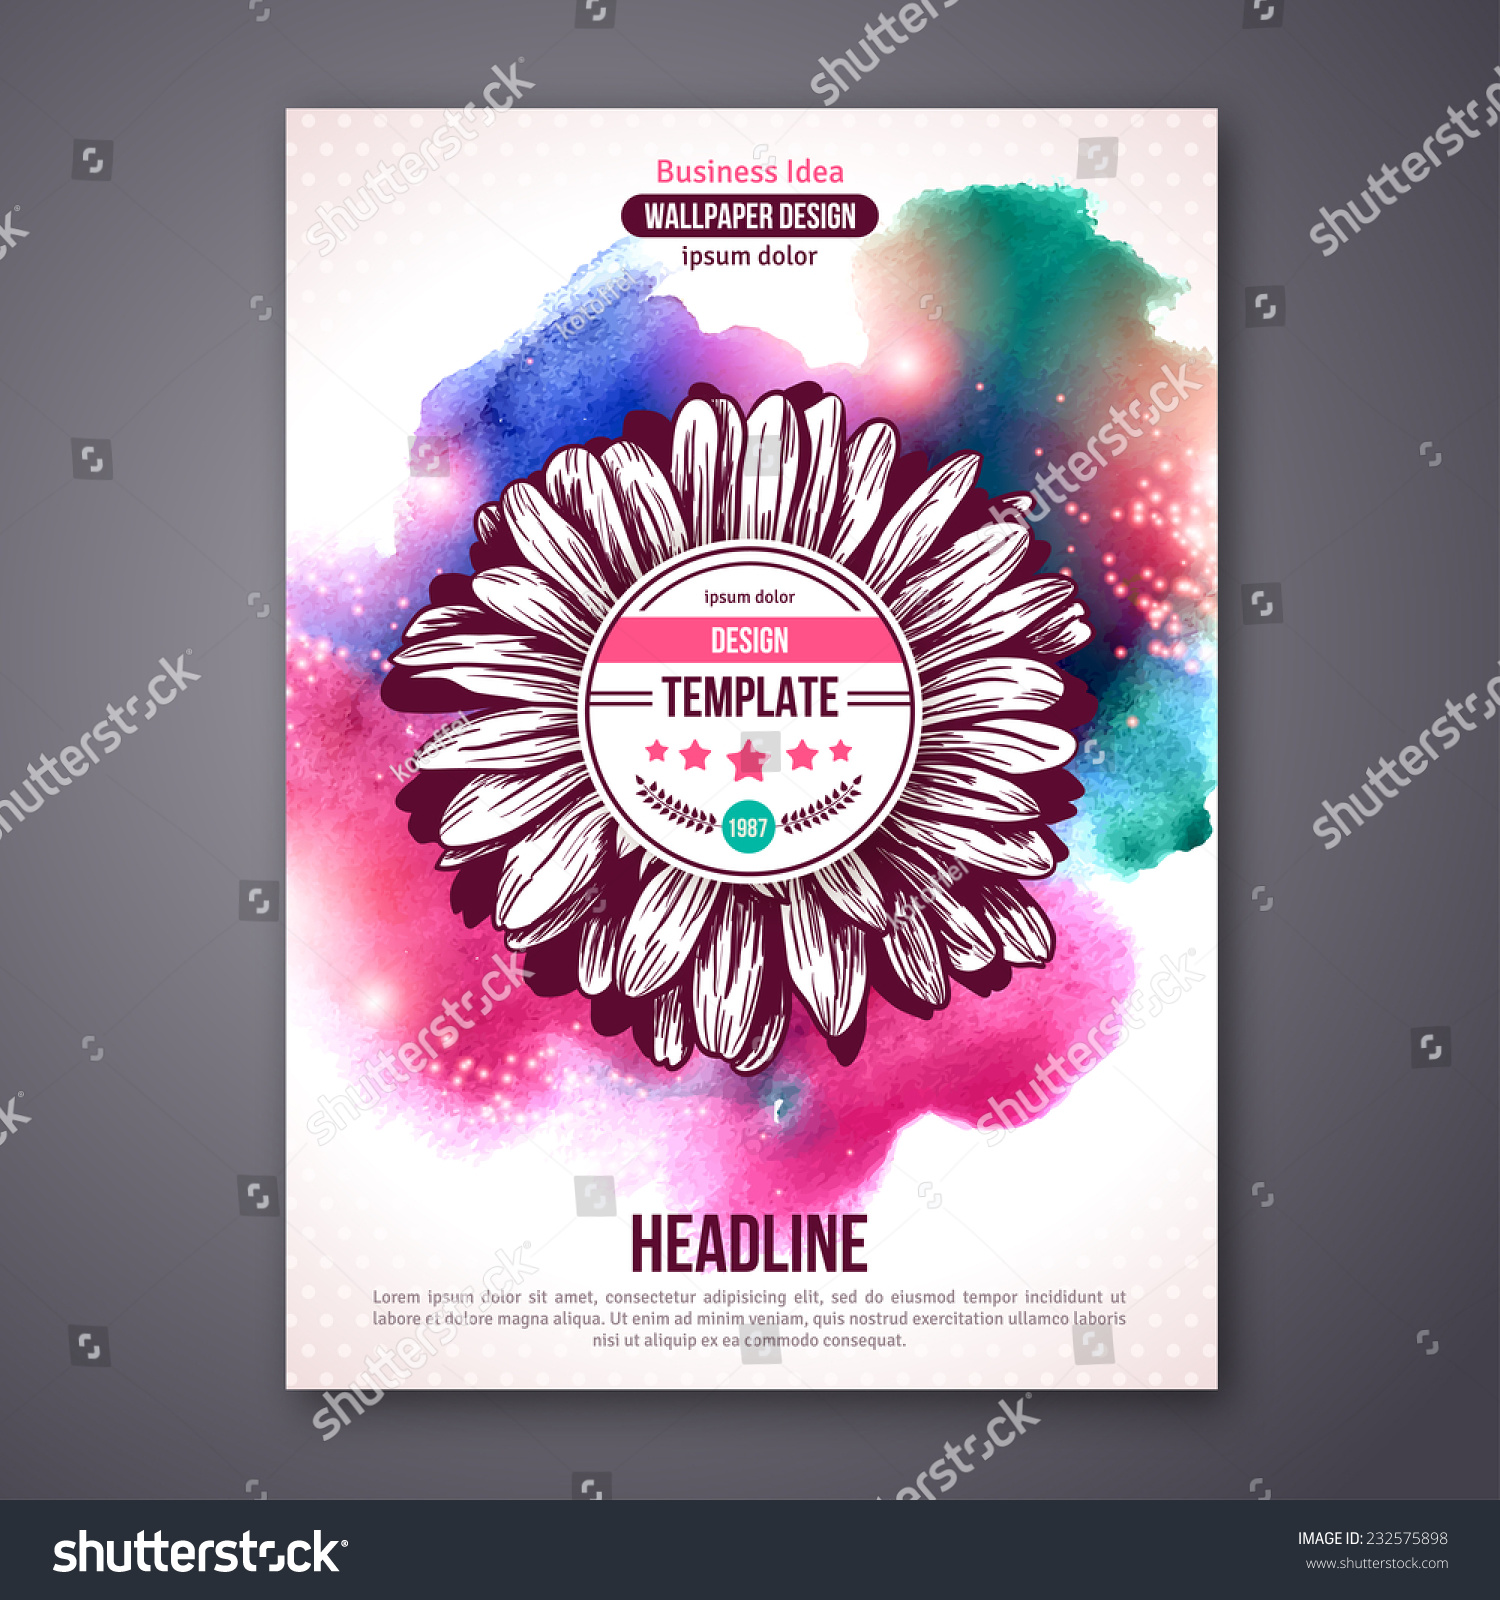 Business Poster Or Flyer Template With Watercolor Paint